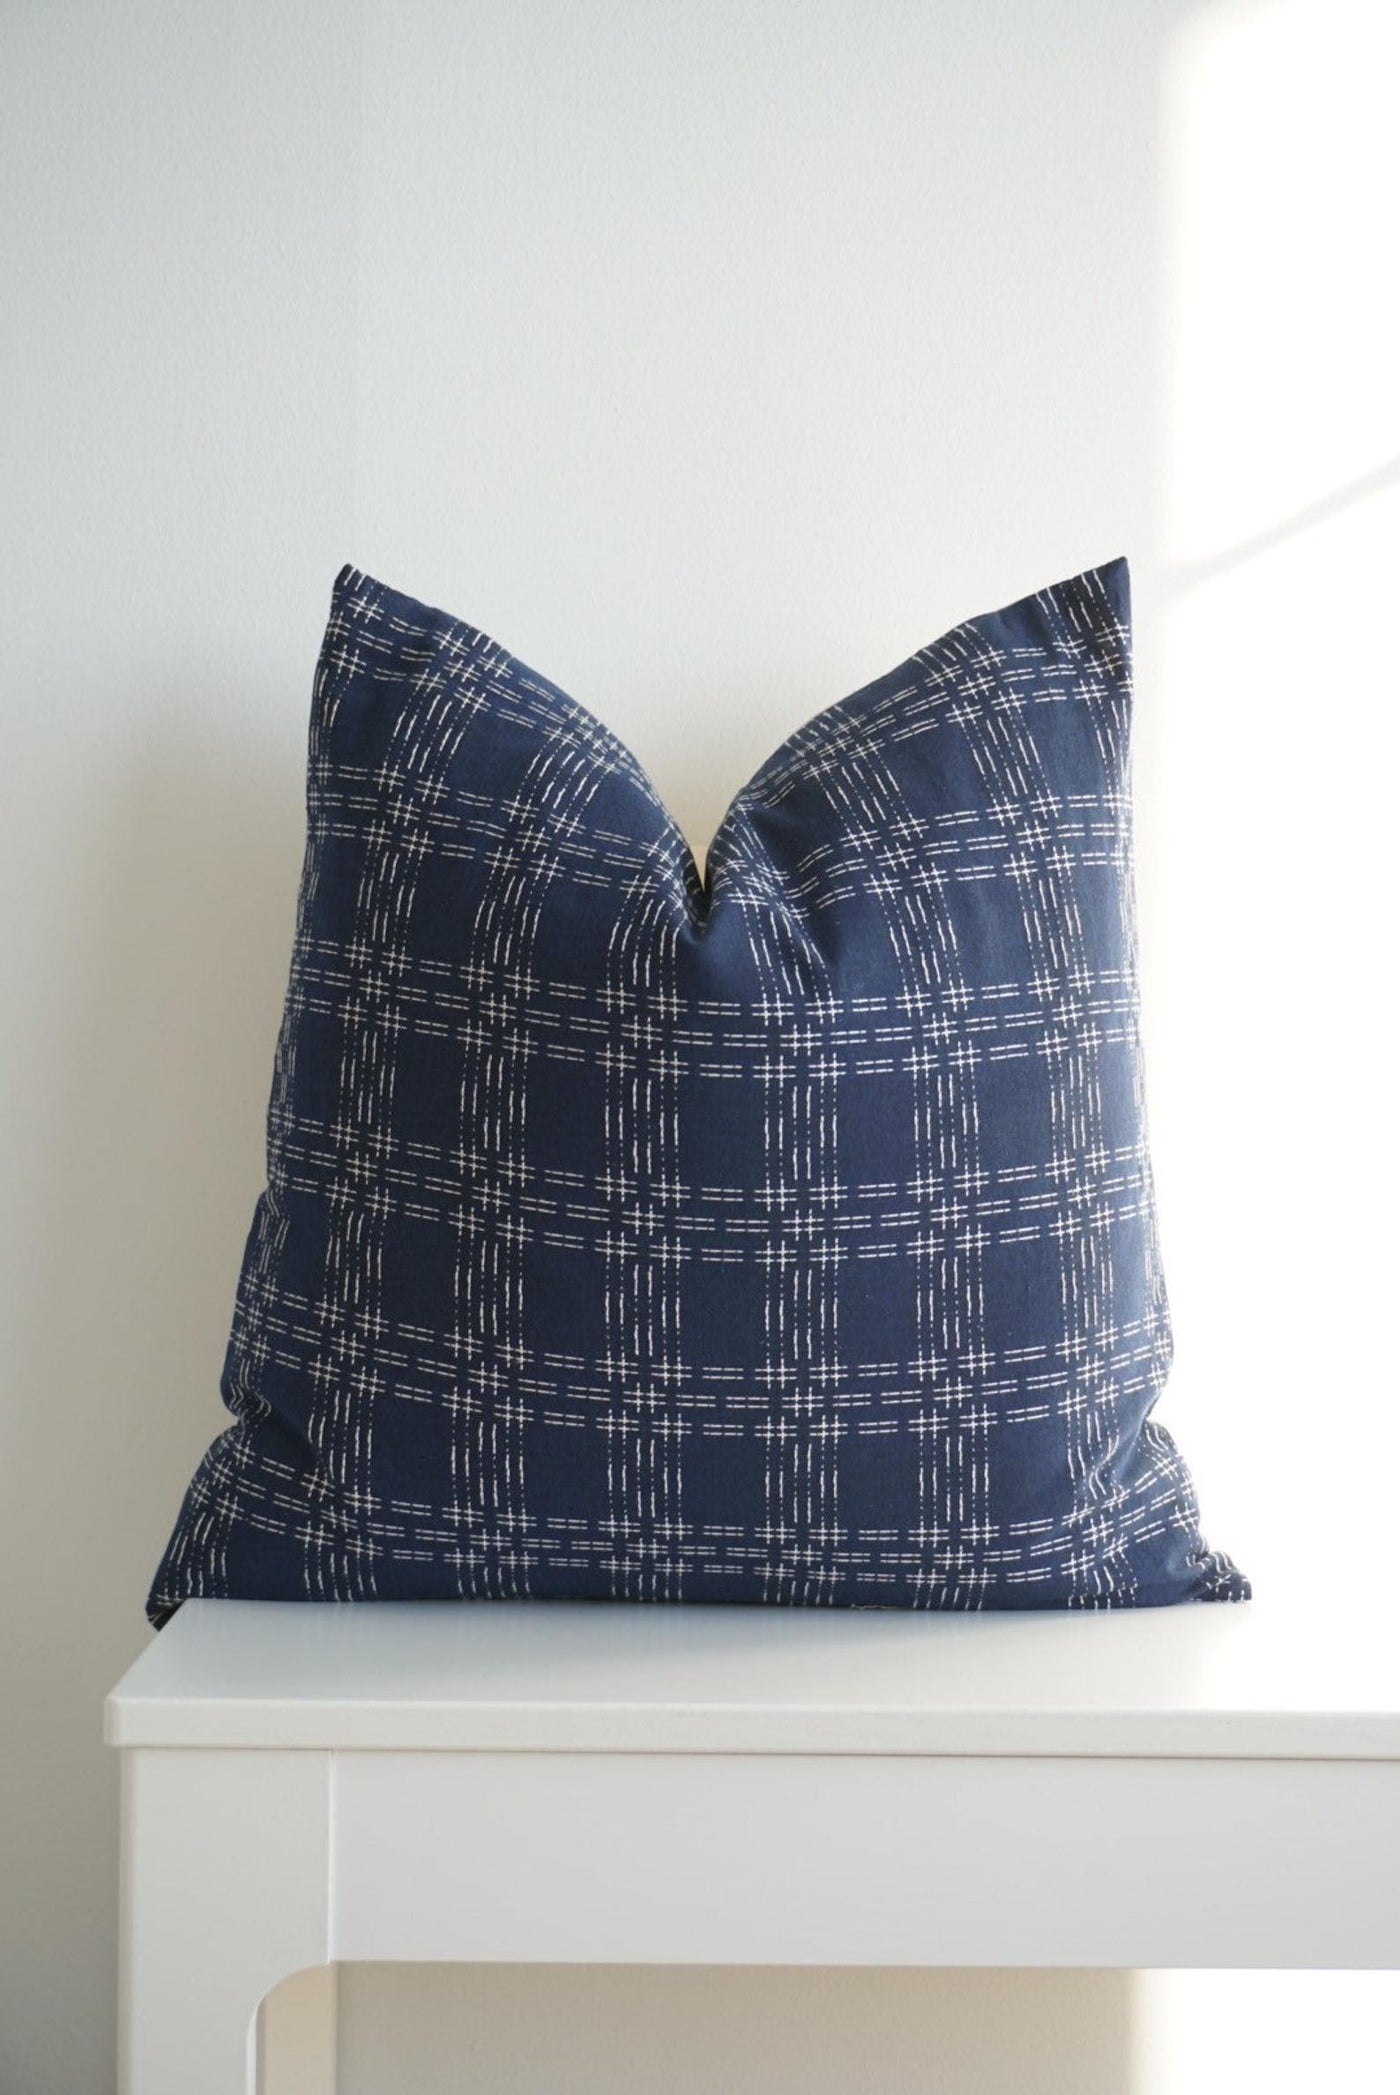 Indigo and Cream Stitched Pillow